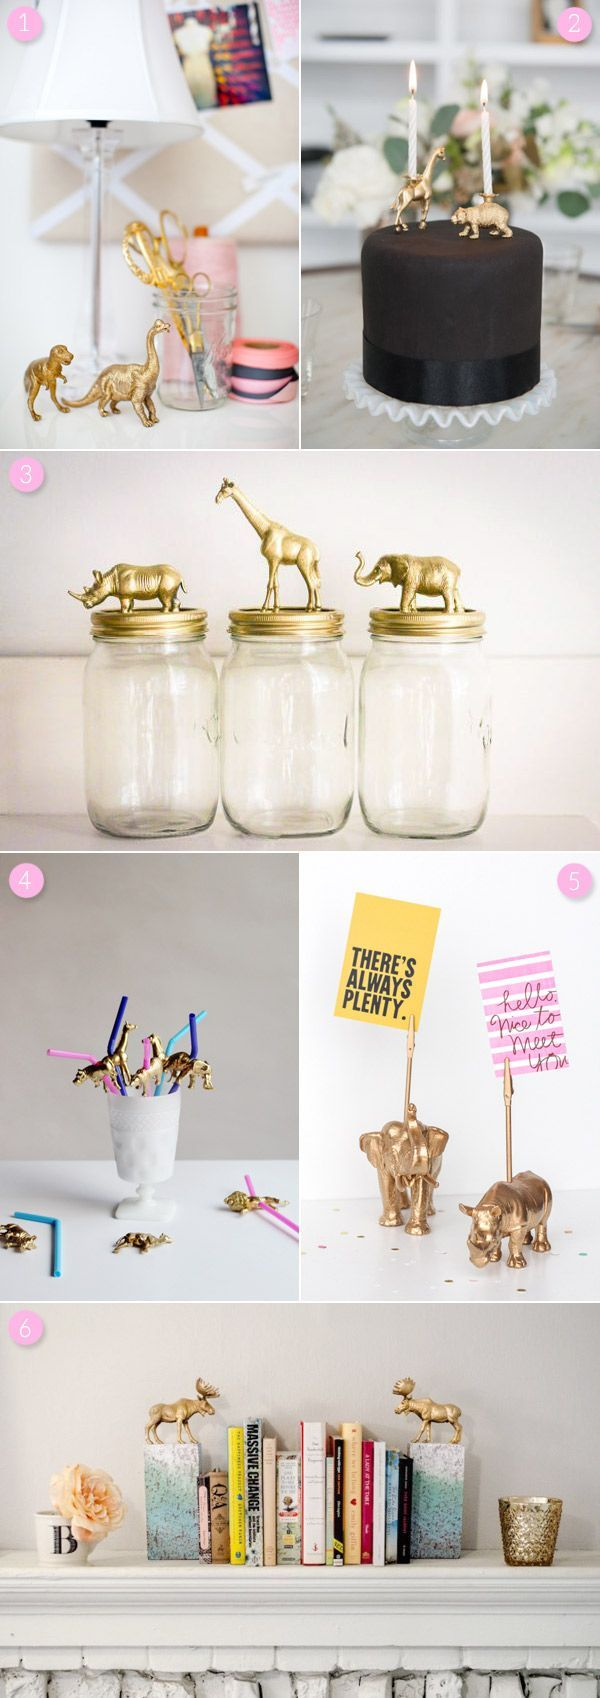 6 Awesome DIY Gold Animal Projects from @Cyd Converse | The Sweetest Occasion